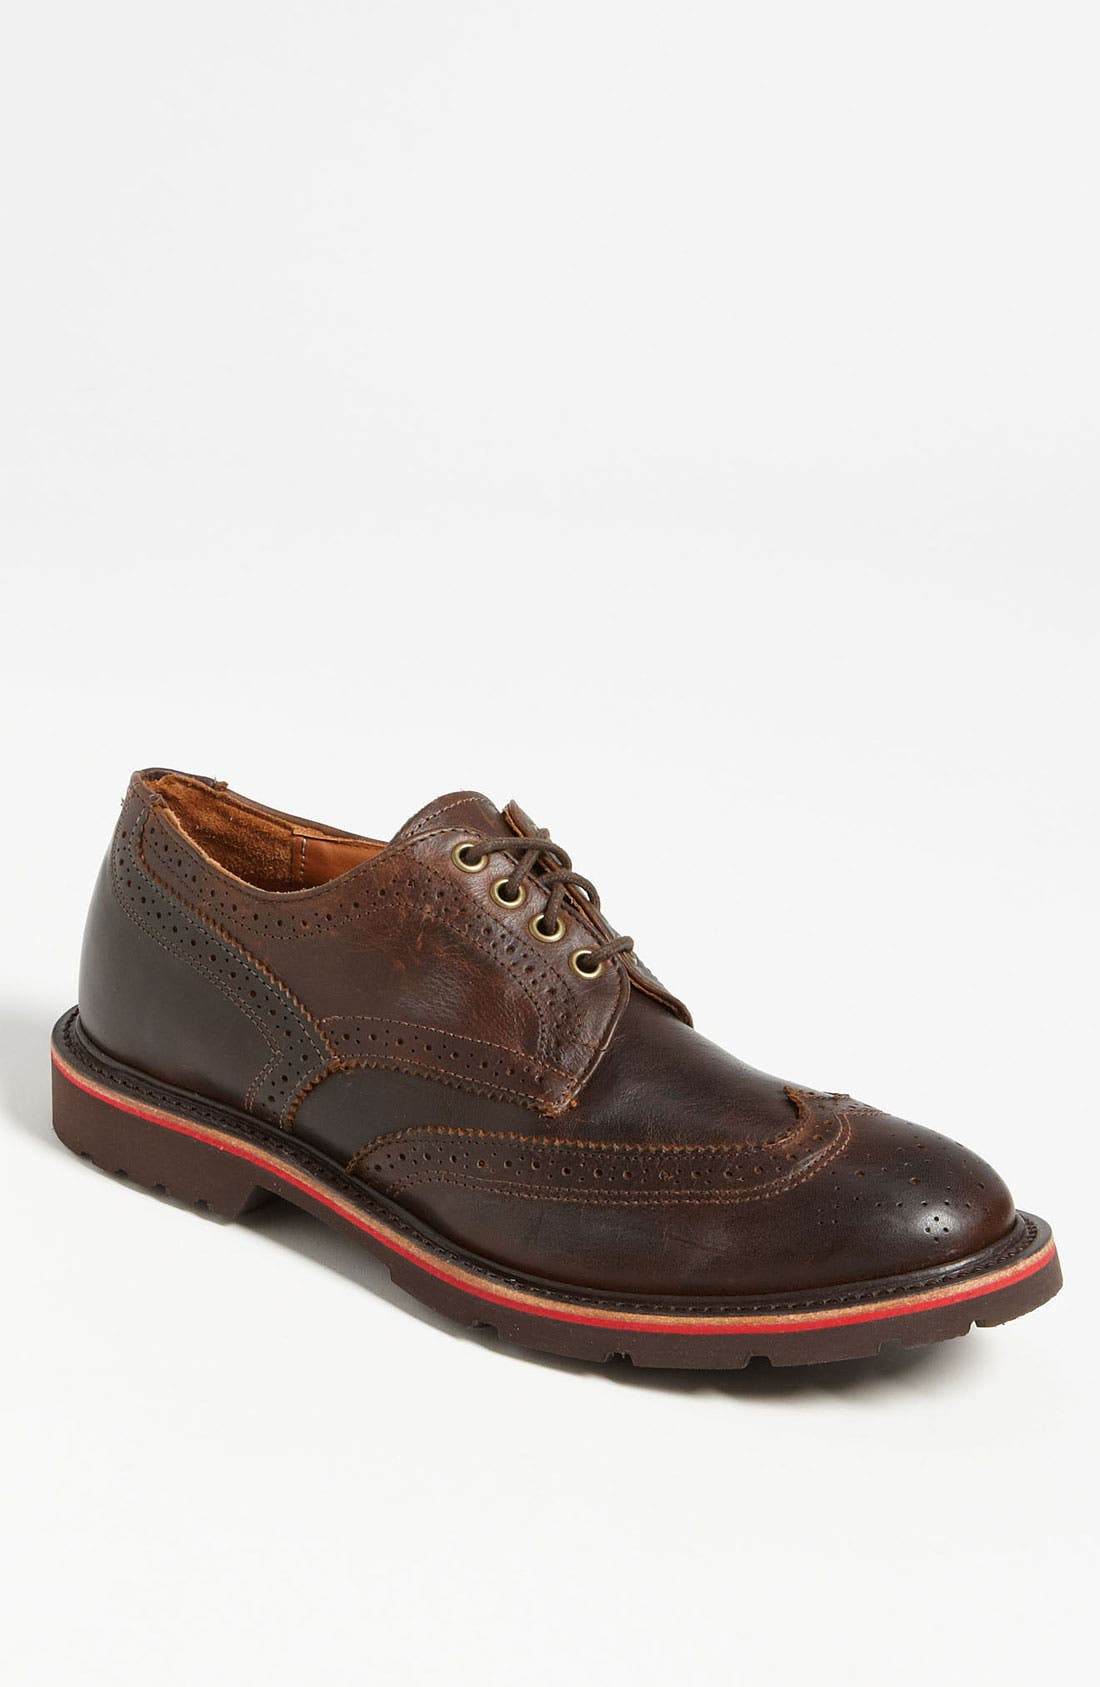 Main Image - Walk-Over 'Franklin' Wingtip